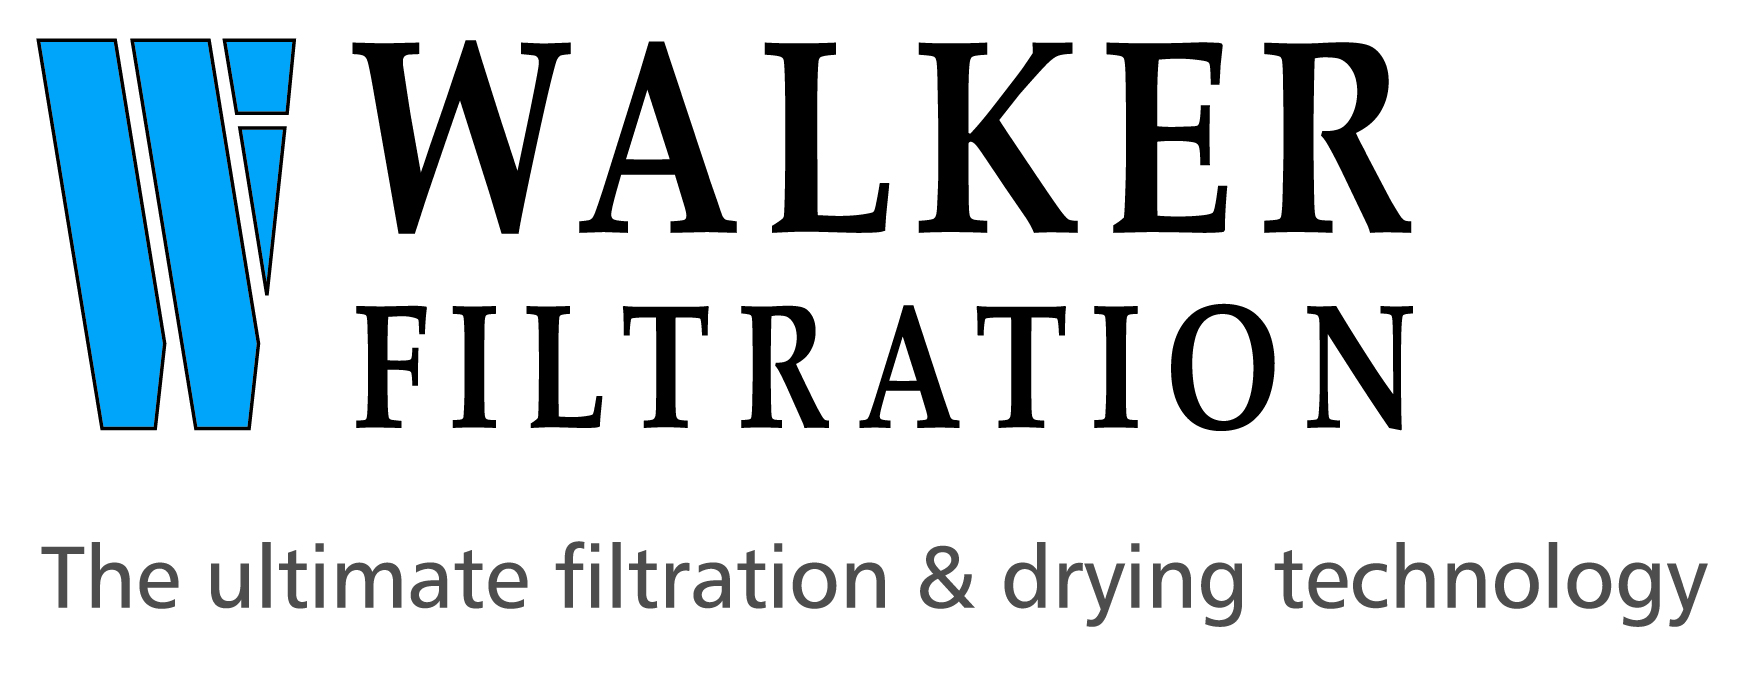 Walker-Filtration-Logo-300dpi-01.jpg